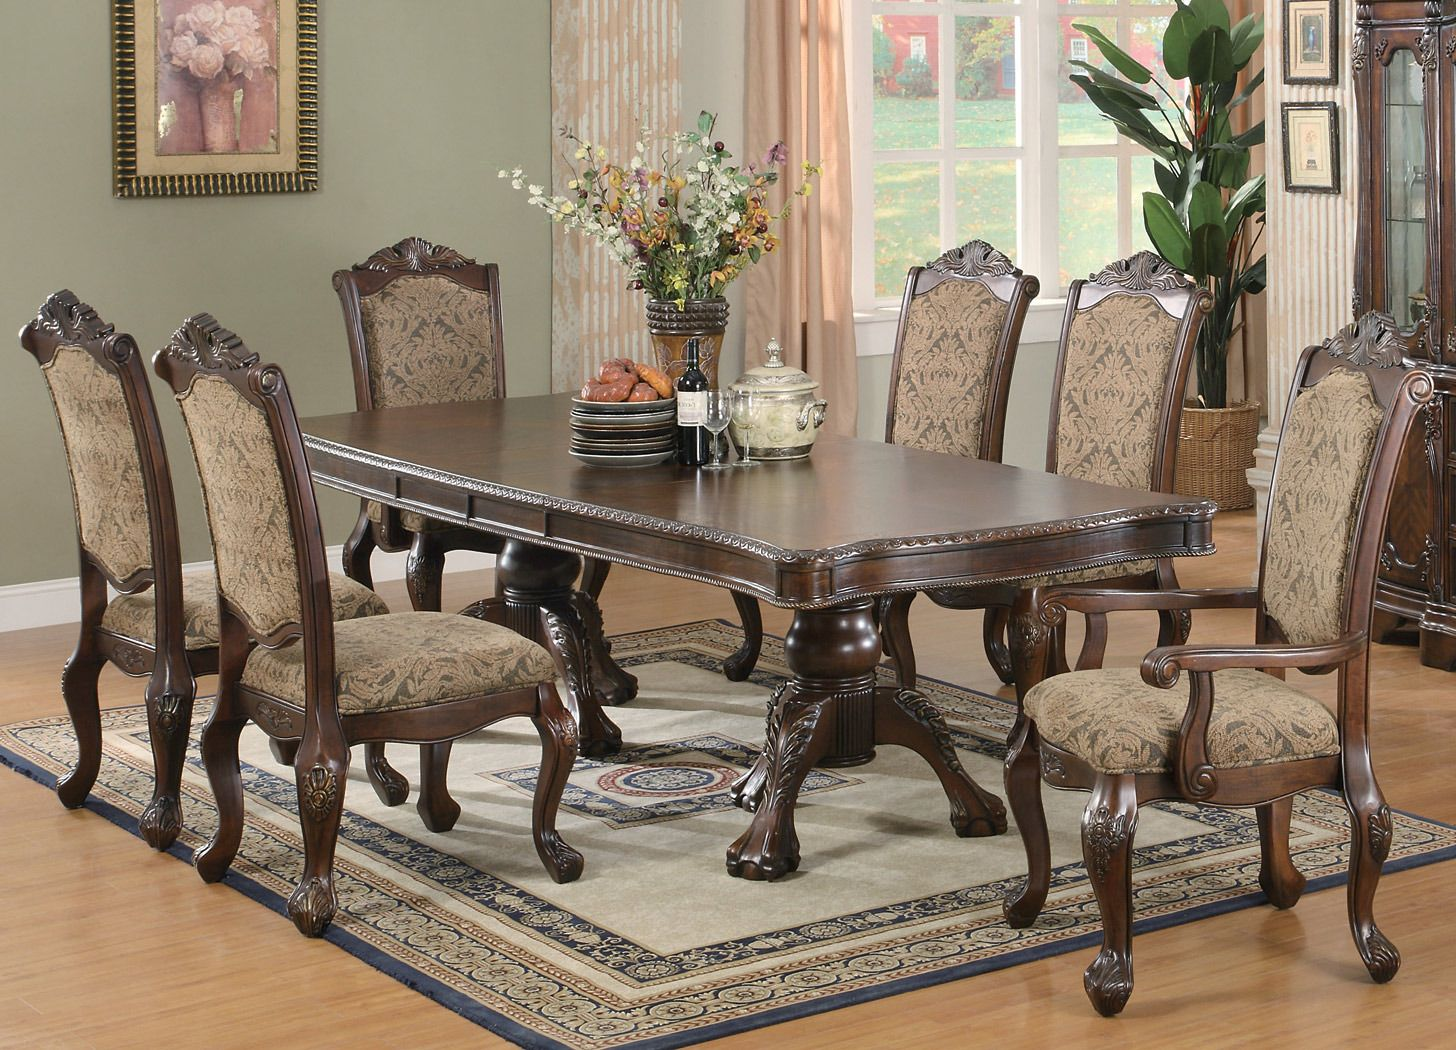 Outstanding Andrea Double Pedestal Table Dining Room Set Coaster Download Free Architecture Designs Xoliawazosbritishbridgeorg